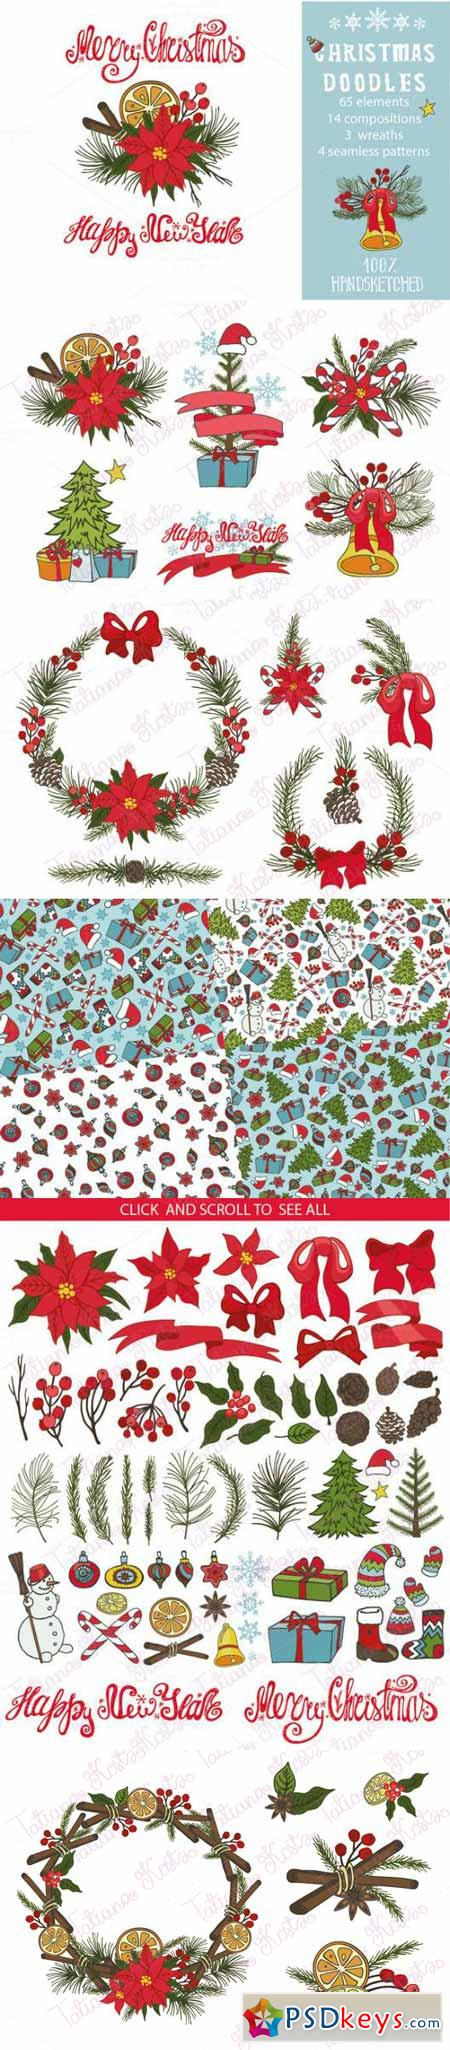 Christmas Doodle Decoration Kit02 456406